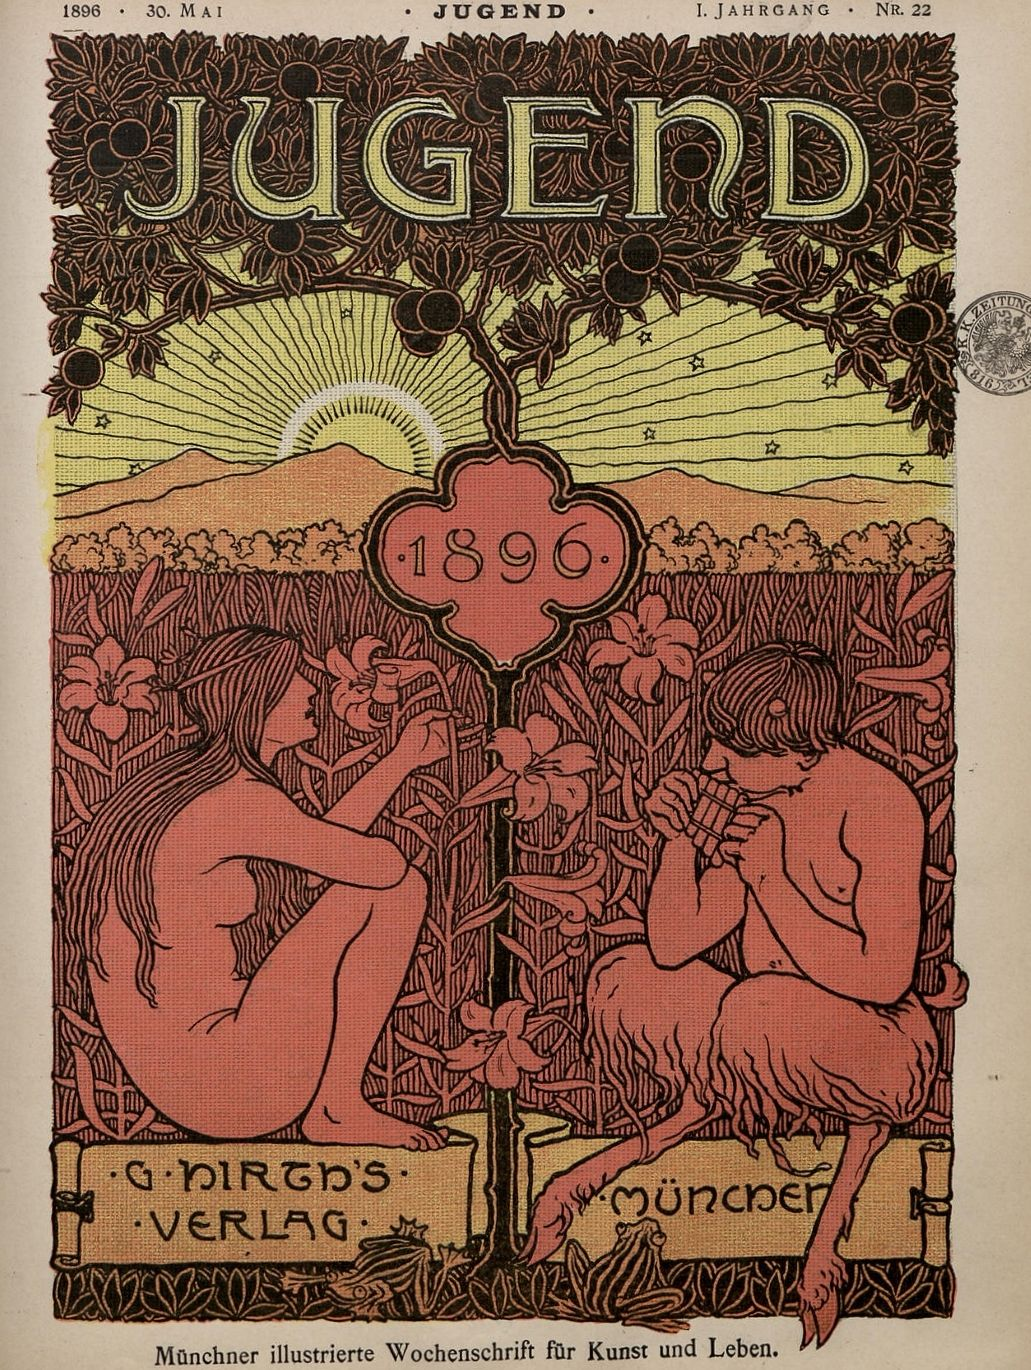 Jugend cover - 1896 art of the beautiful-grotesque: Jugend : Various Artists